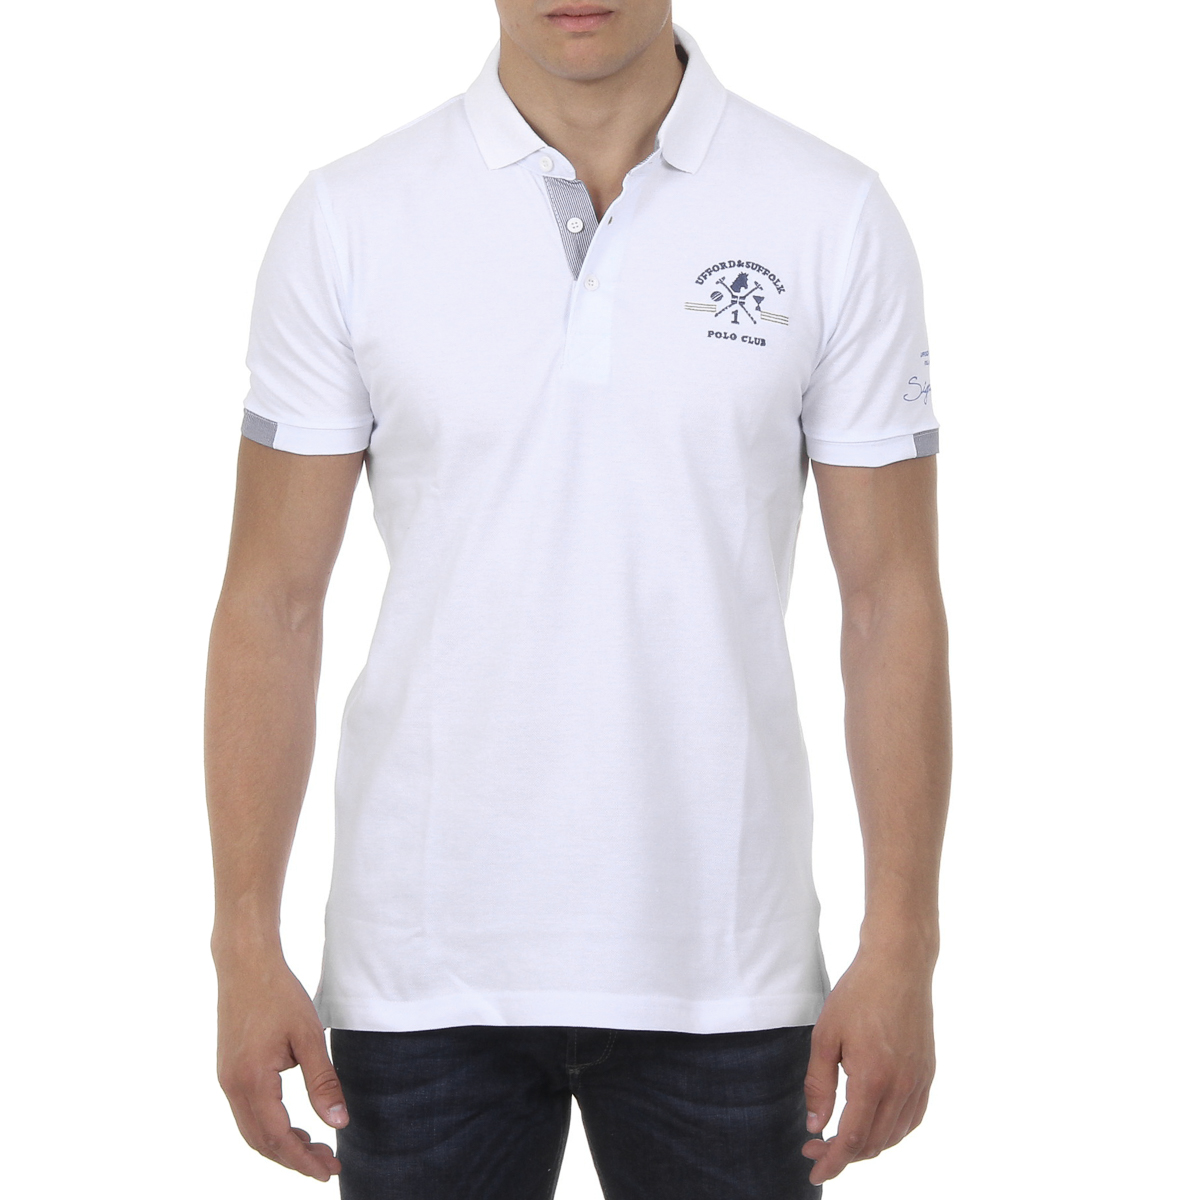 Primary image for Ufford & Suffolk Polo Club Mens Polo Short Sleeves US025 WHITE